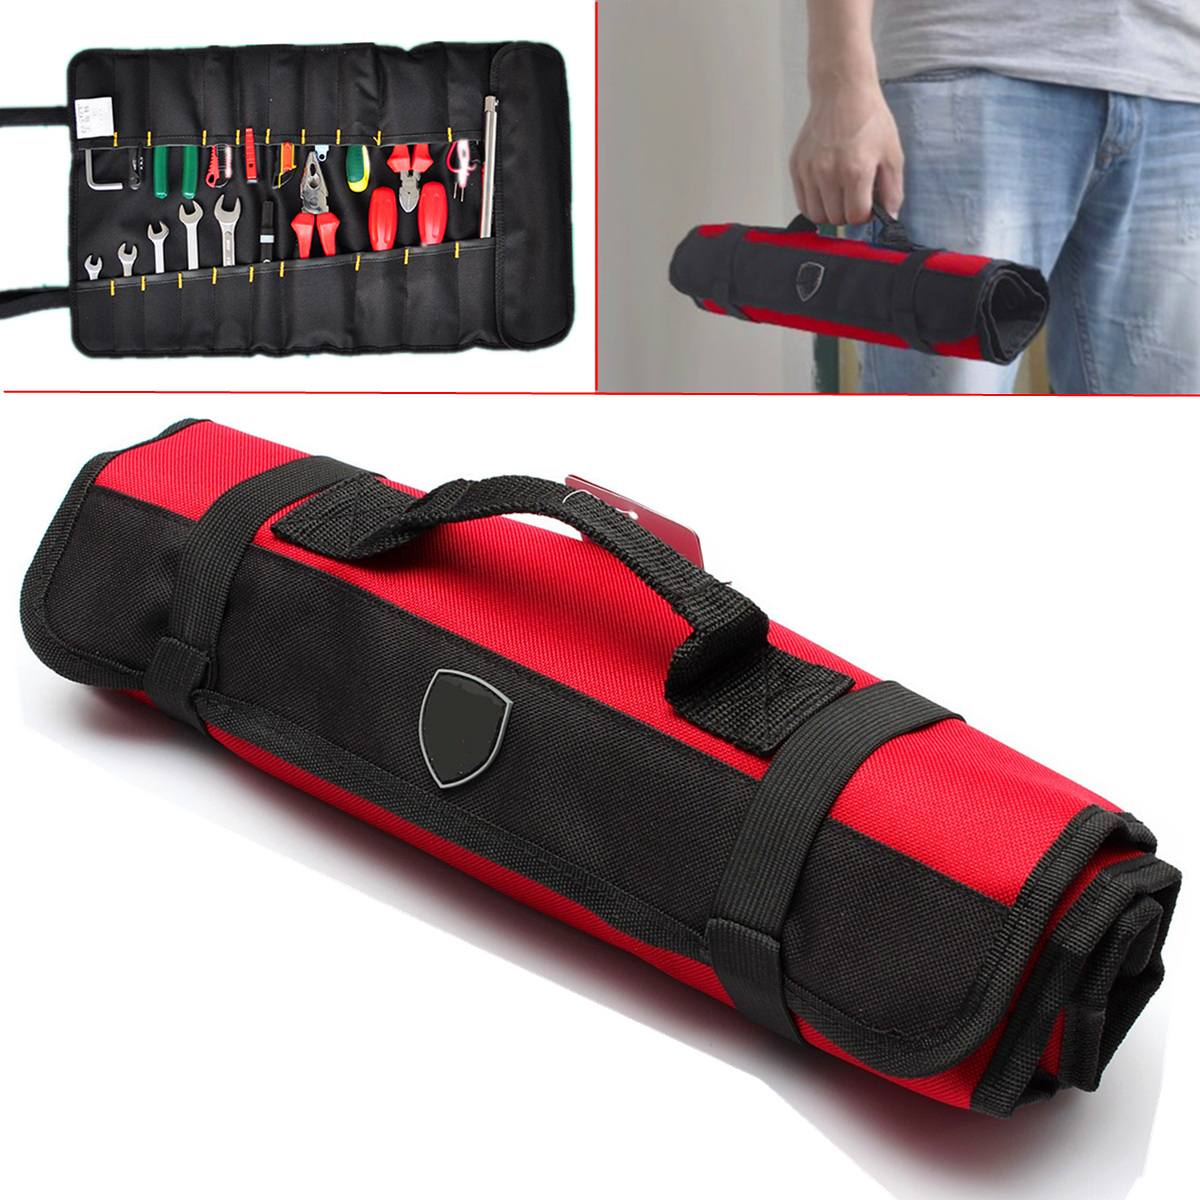 Tool Bag Roll Repairing Tool Storage Bags For Tools Screwdriver Pliers Wrench Electrician Instrument Case High Quality